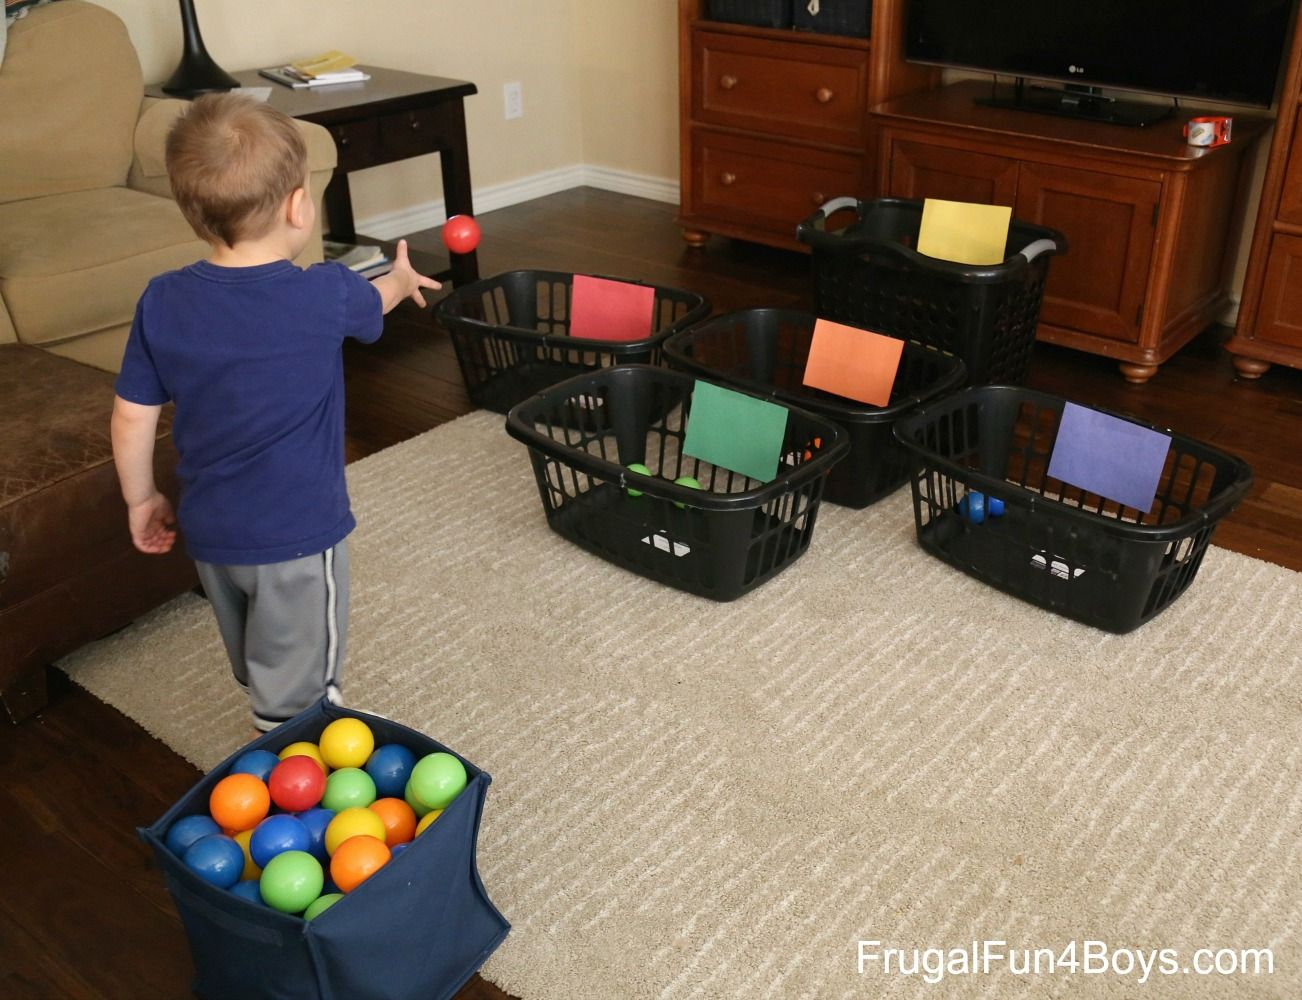 10 Ball Games for Kids     Ideas for Active Play Indoors    Toddle     10 Indoor Ball Games for Kids More